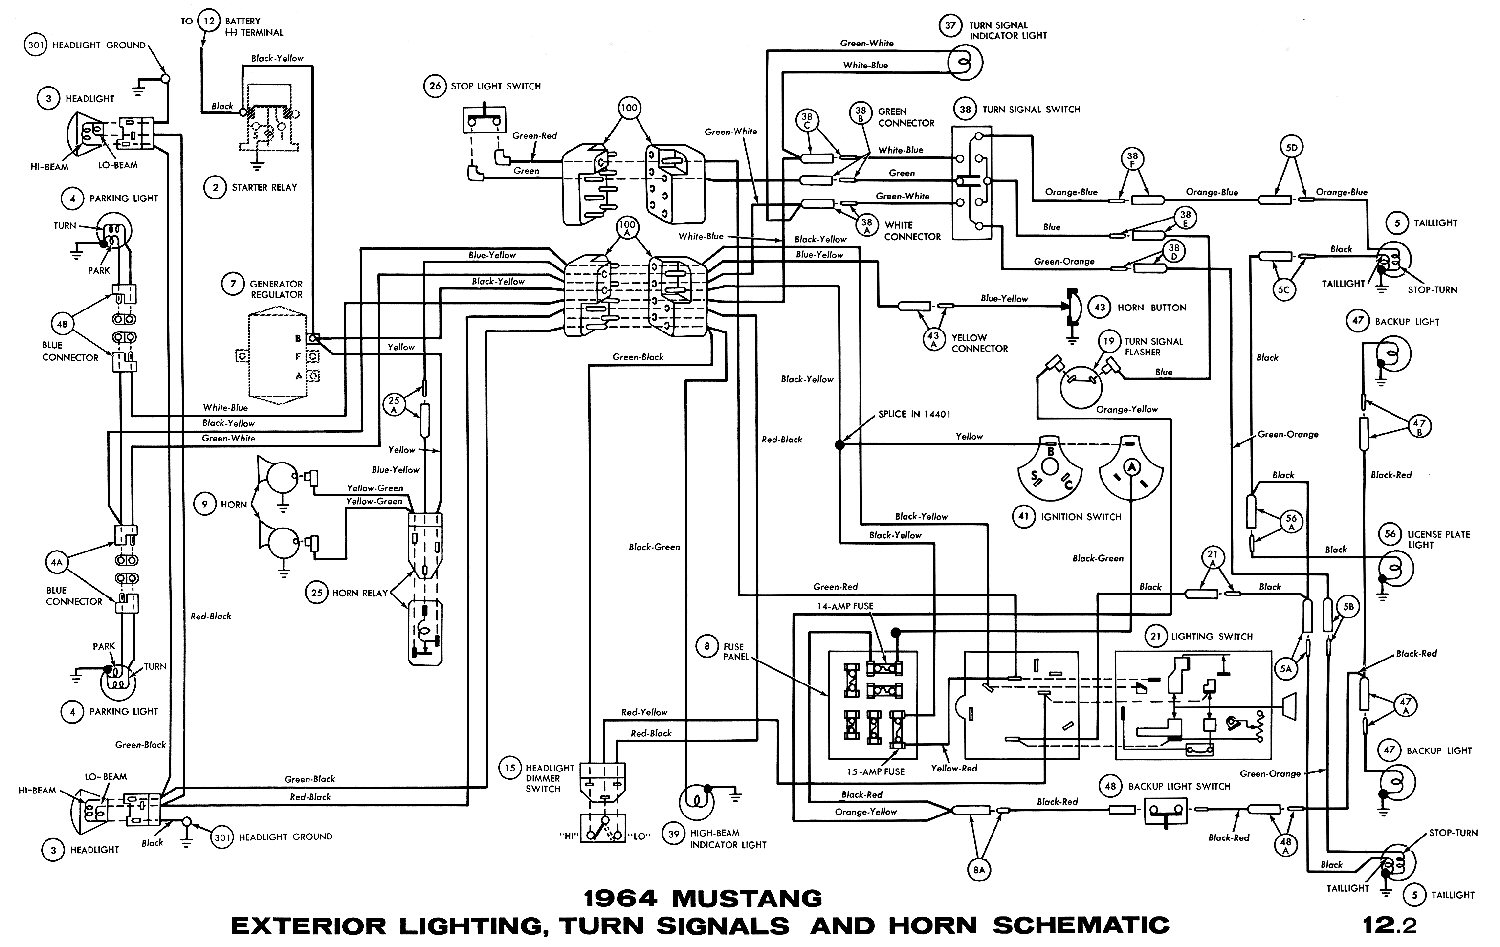 1964i 1964 mustang wiring diagrams average joe restoration 1969 Ford Mustang Wiring Diagram at bayanpartner.co